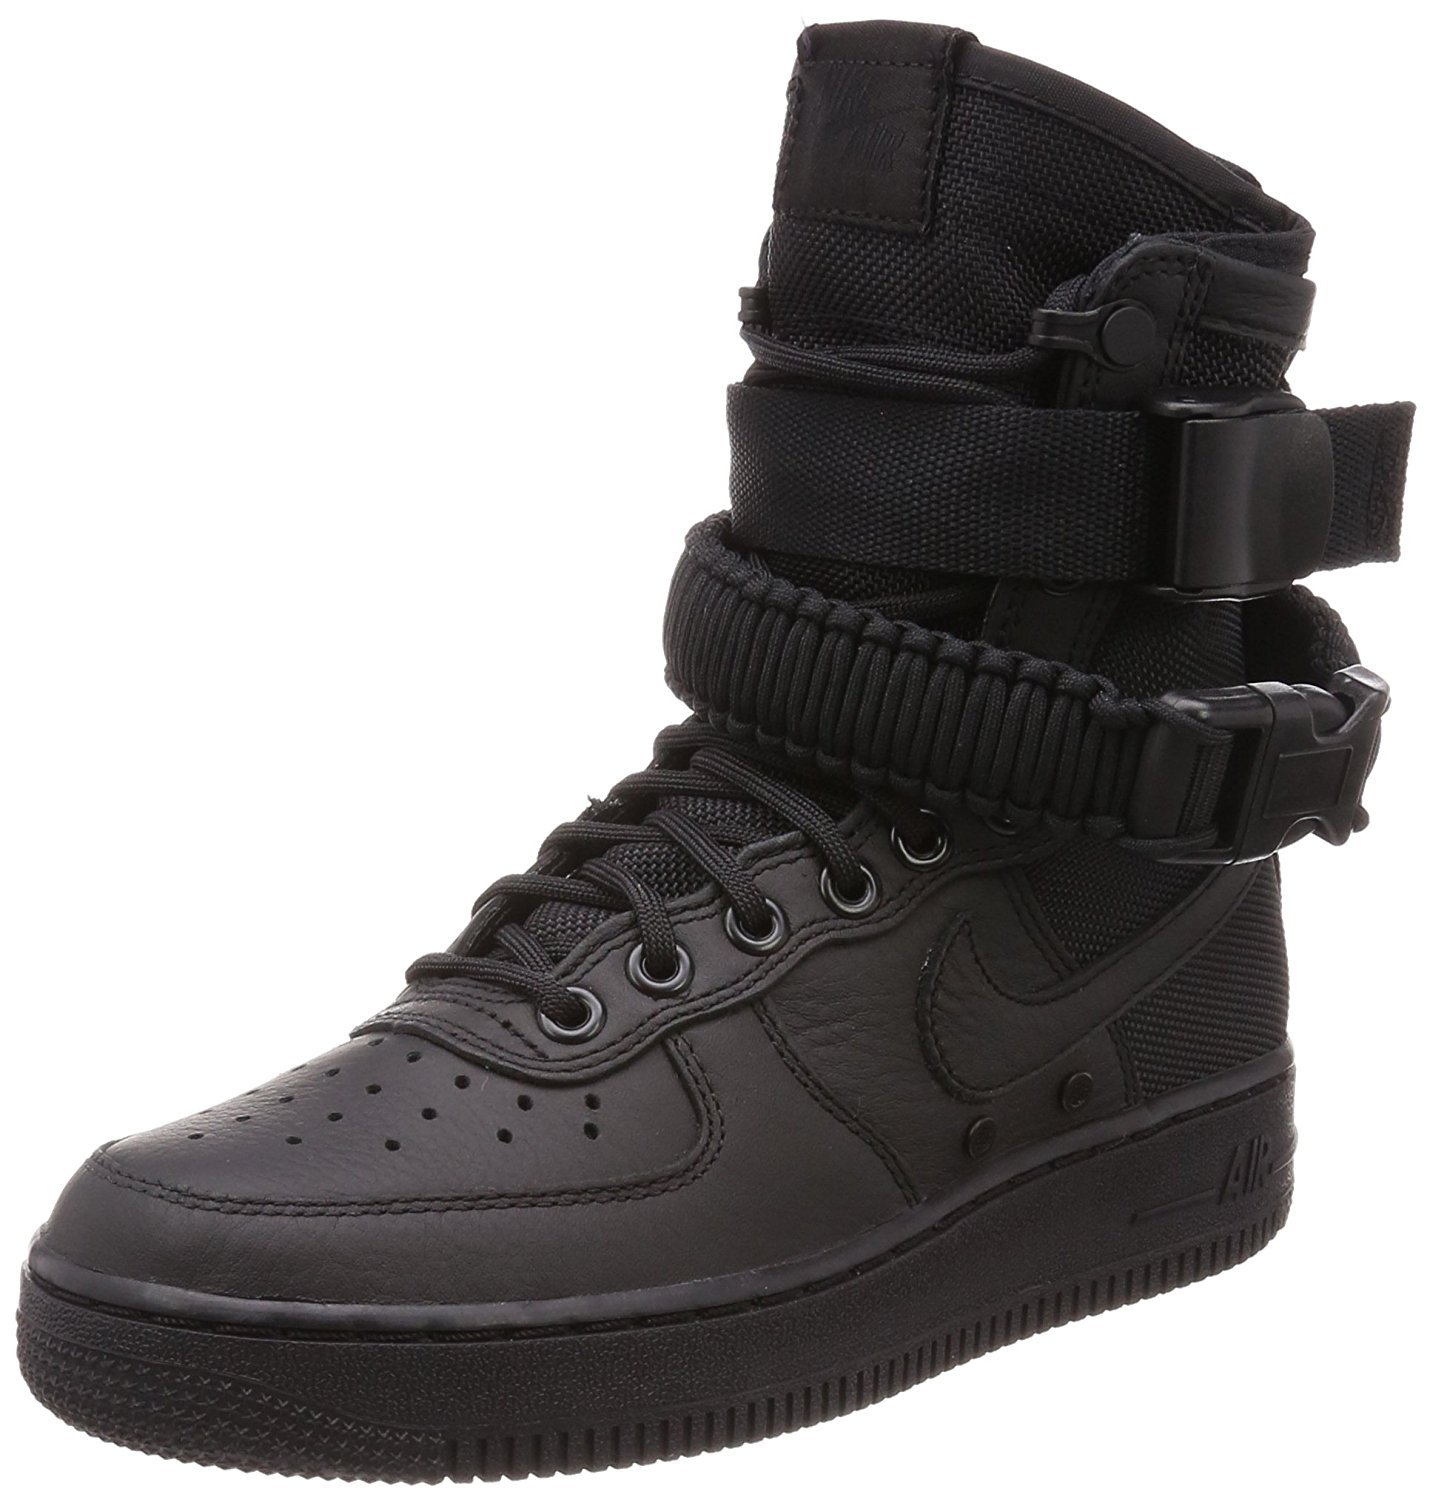 buy popular 4c2cc 4156f Galleon - Nike SF Air Force 1 Women s Boots Black Black Black 857872-002 (5  B(M) US)